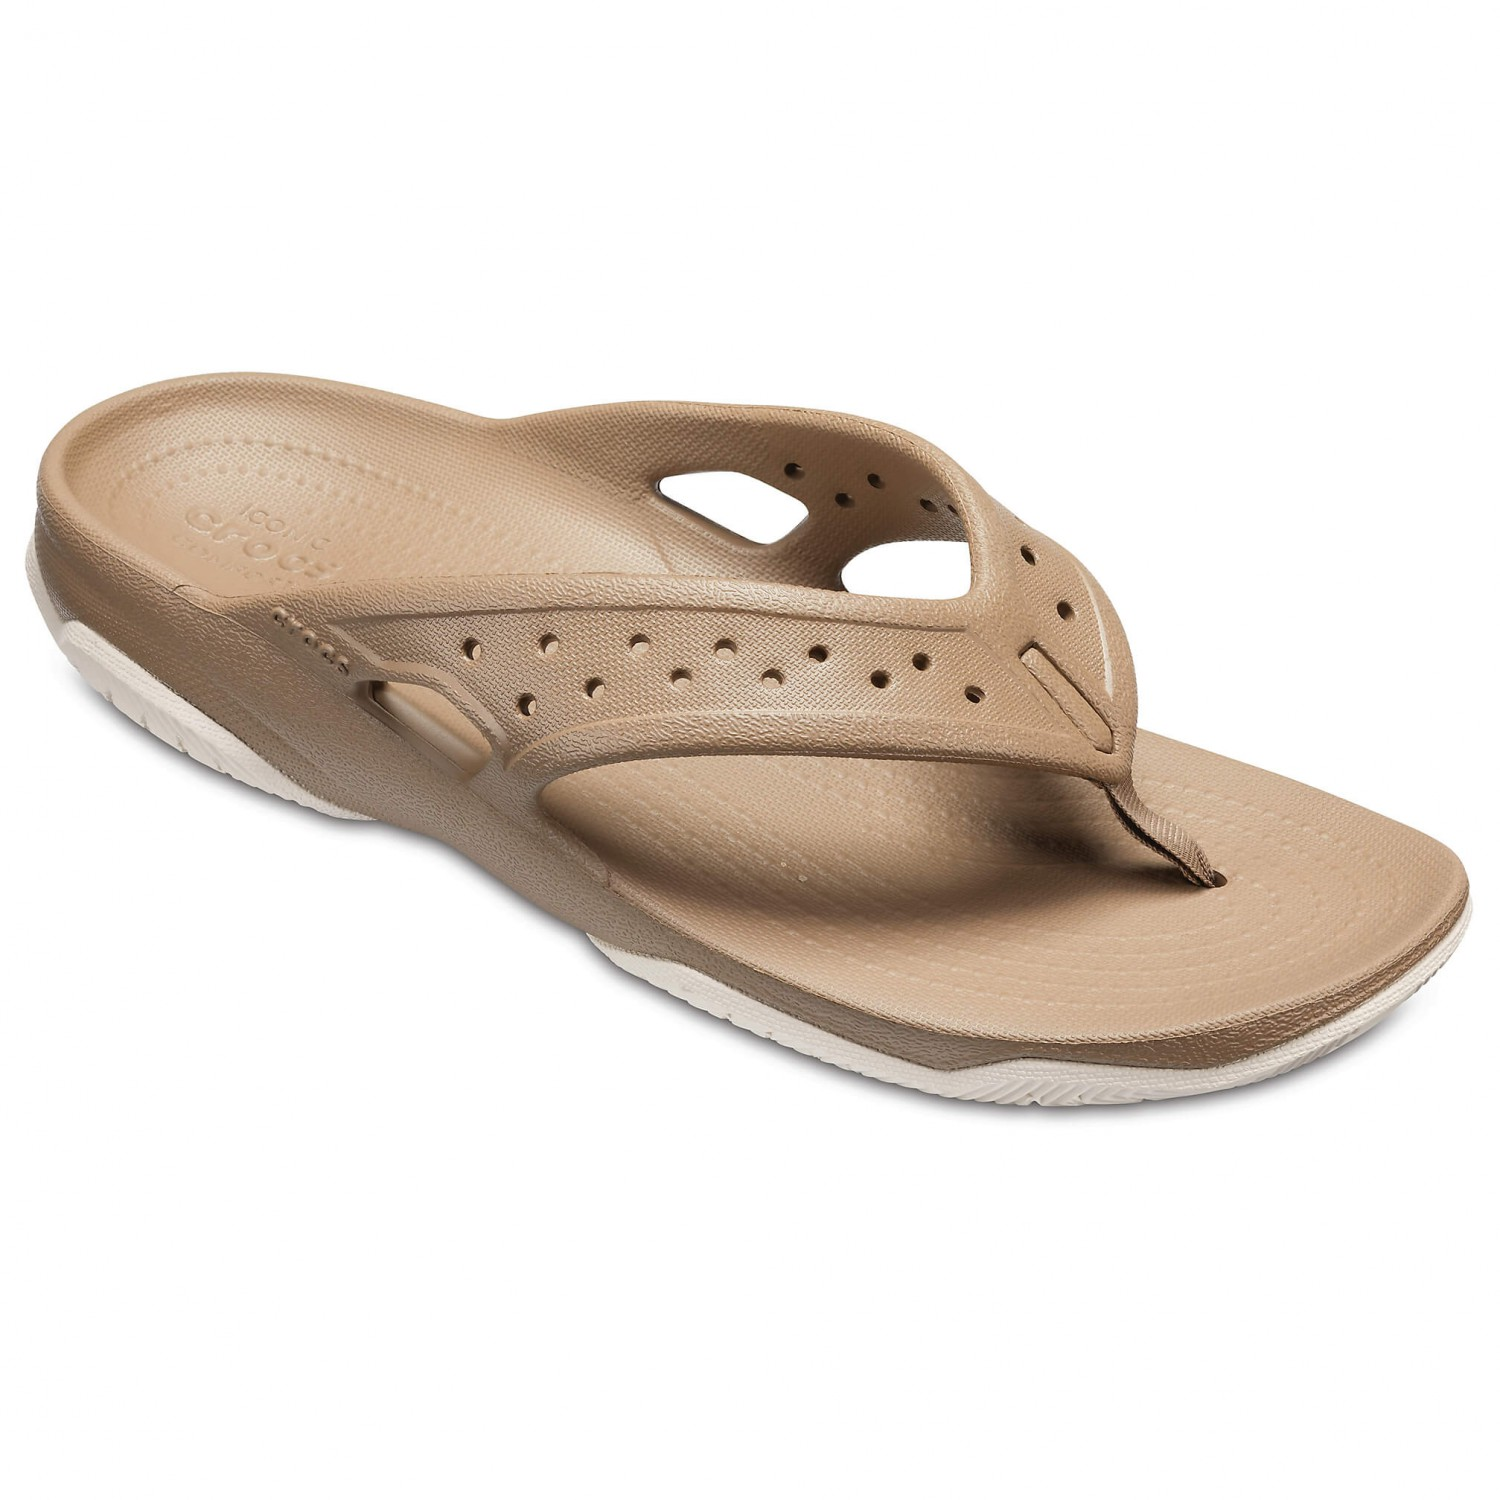 Crocs - Swiftwater Deck Flip - Sandalen Khaki / Stucco